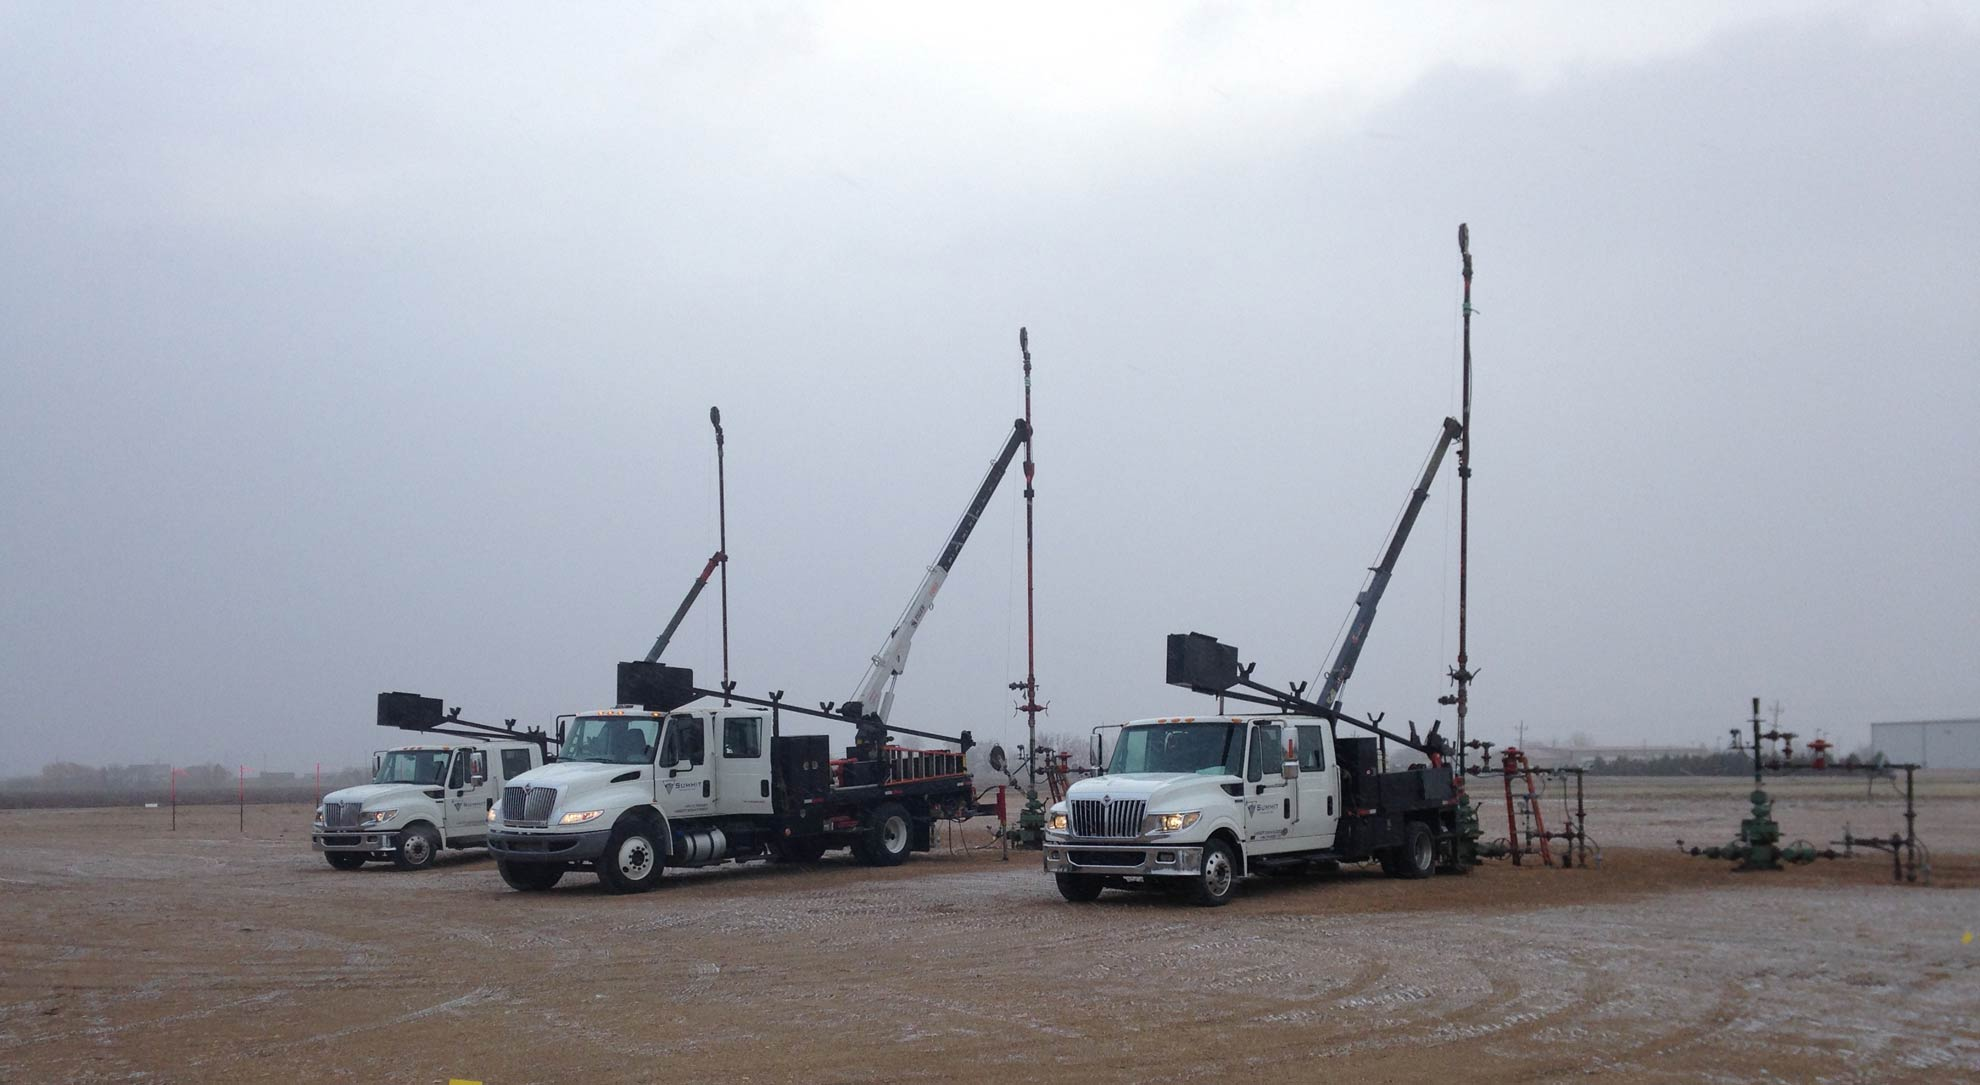 Trucks in process of well drilling in Greeley, CO